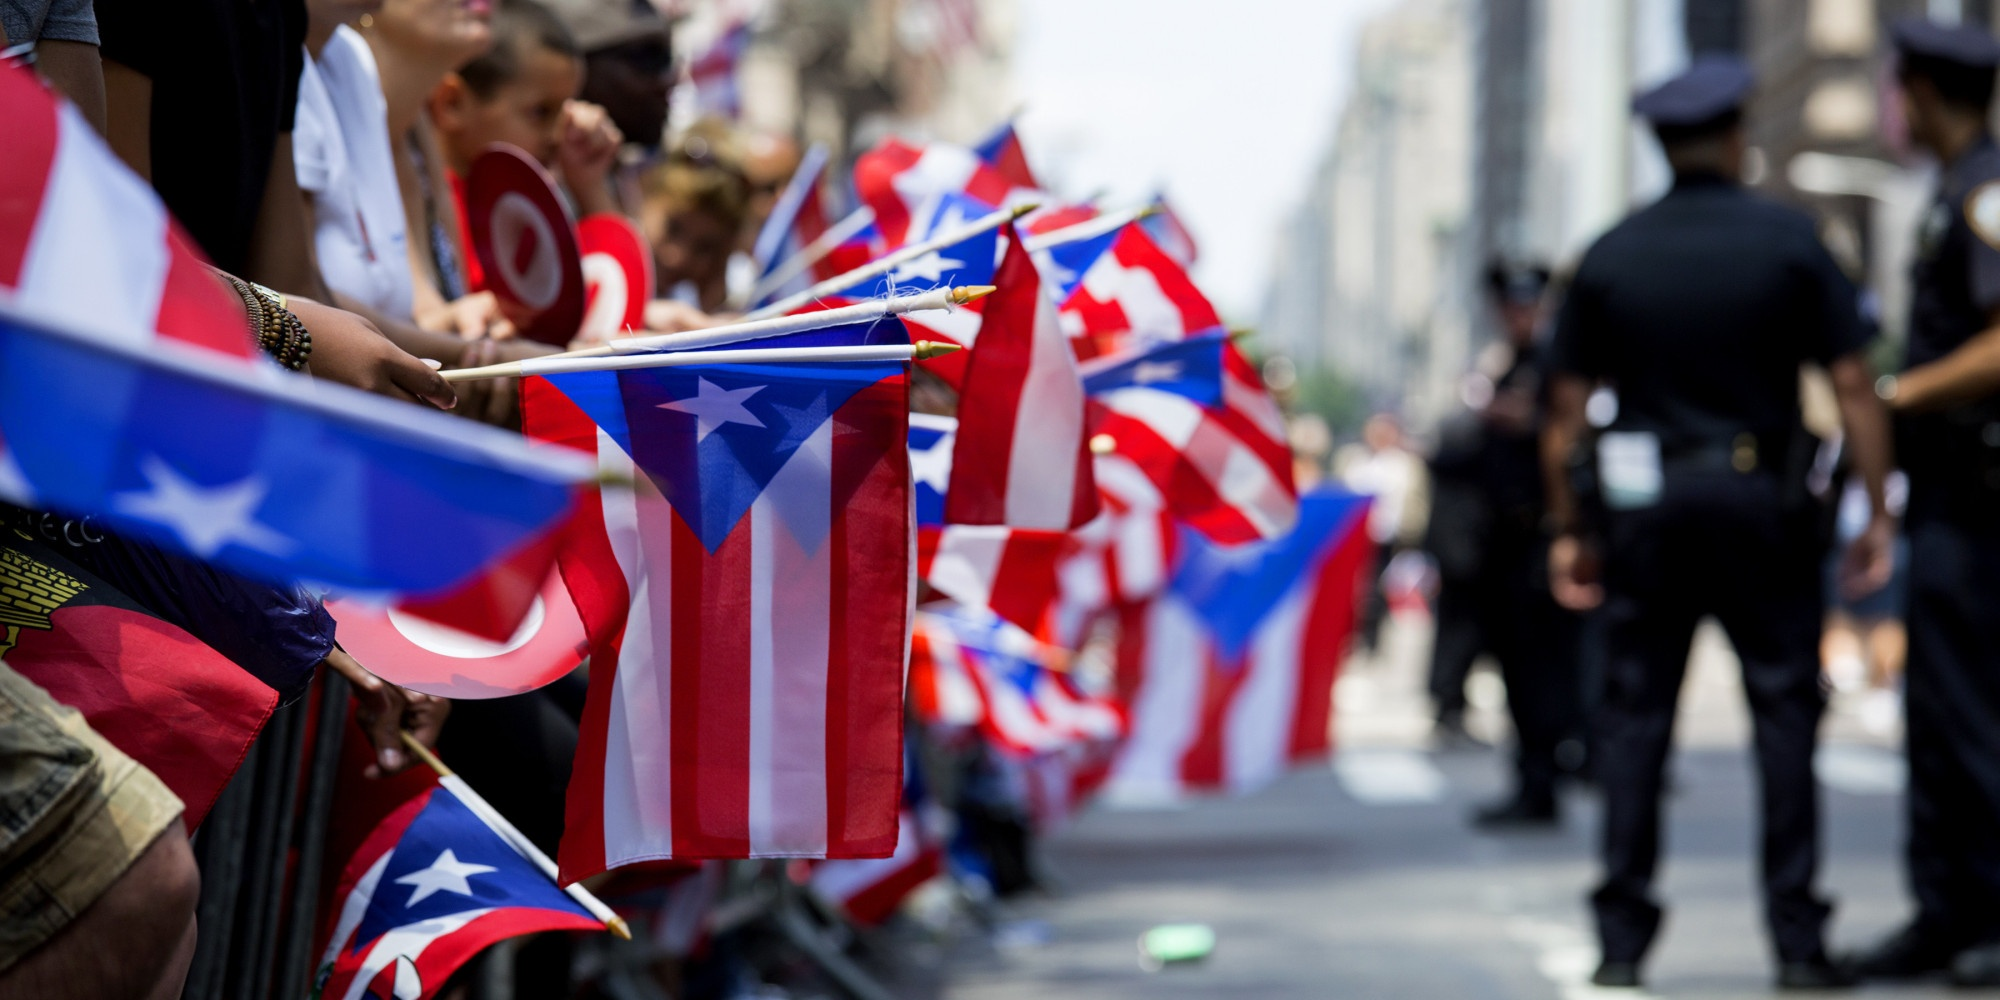 Fags of Puerto Rico are displayed along 5th Ave. during the National Puerto Rican Day Parade Sunday, June 9, 2013, in New York. (AP Photo/Craig Ruttle)